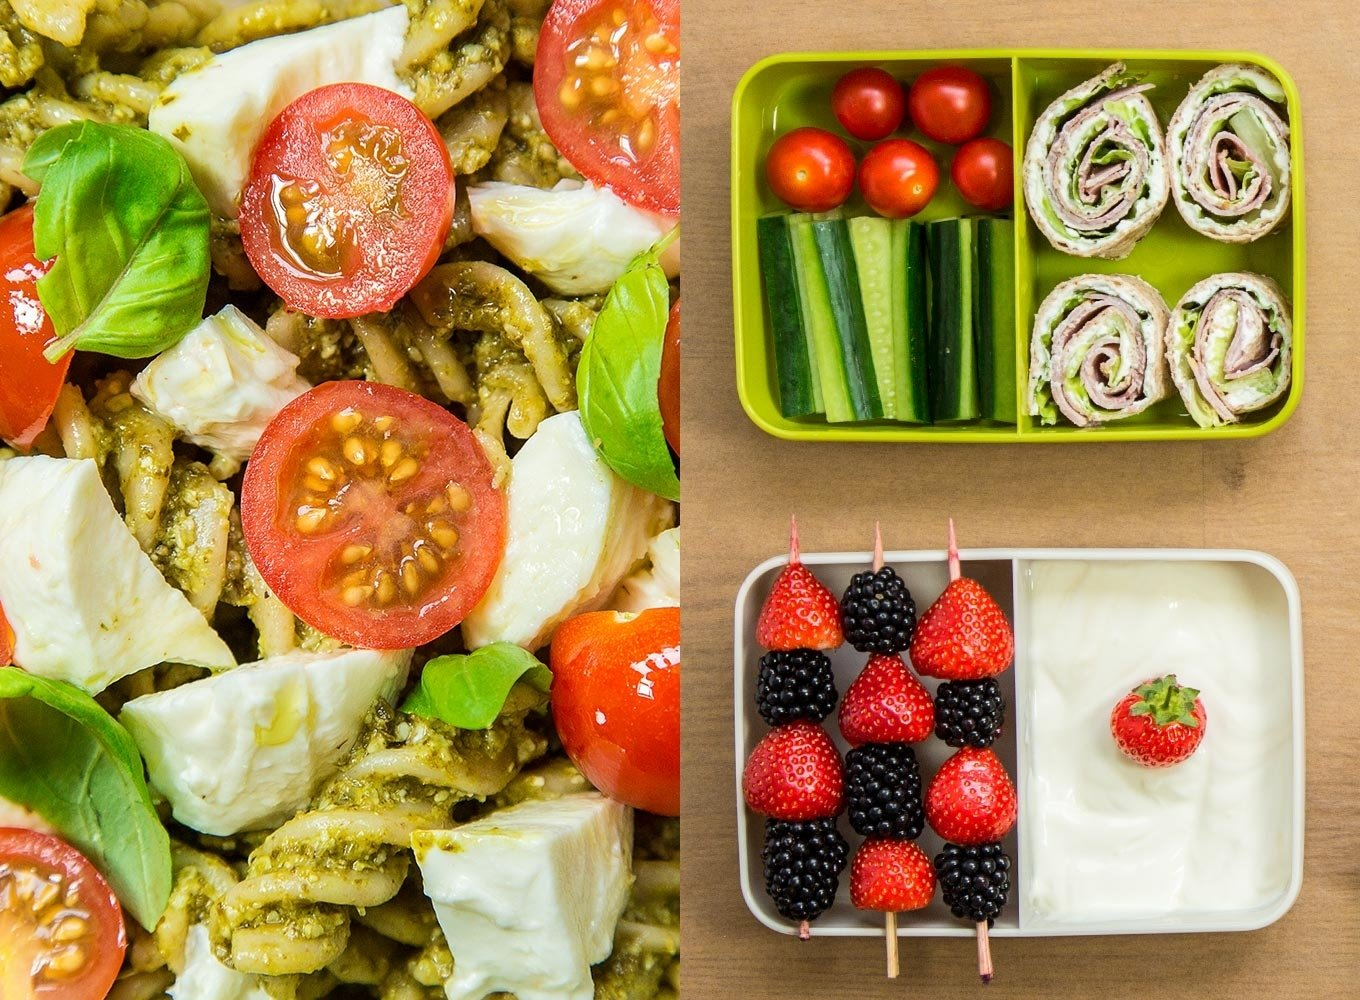 10 Pretty Healthy Lunchbox Ideas For Kids healthy lunch box ideas easy recipes for packed lunches gousto blog 2 2020